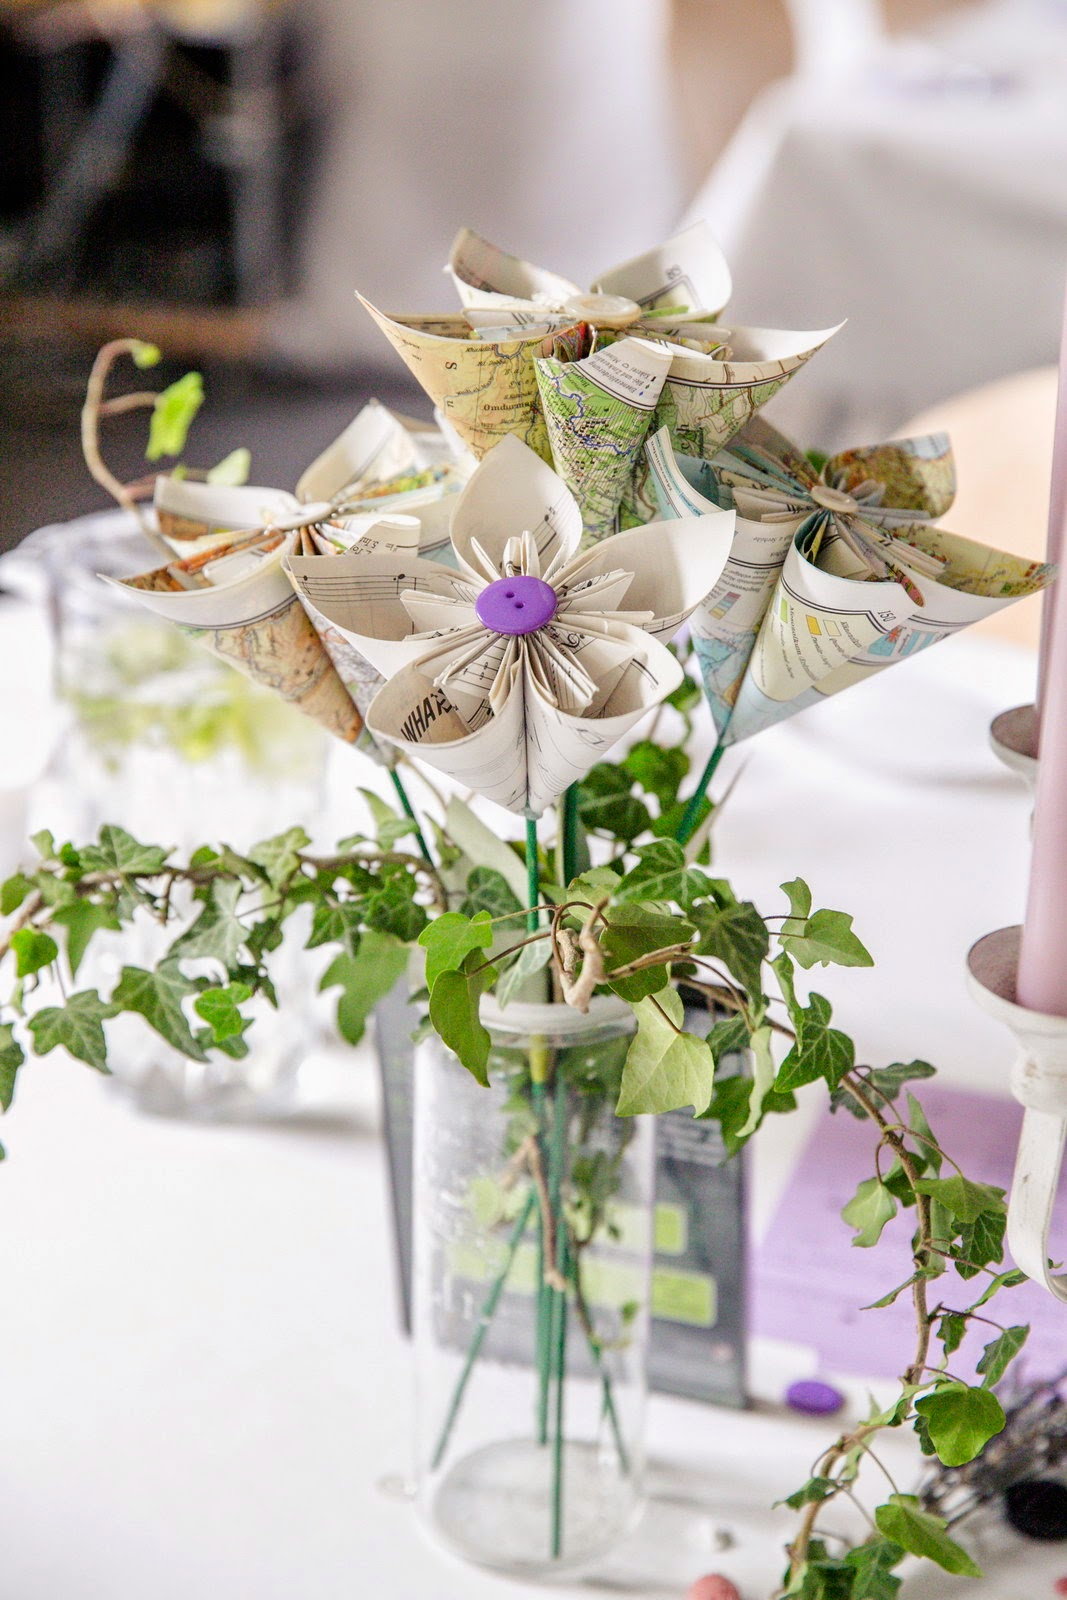 Bazooka Crafts Our Thrifty Crafty Wedding Centerpieces Favors